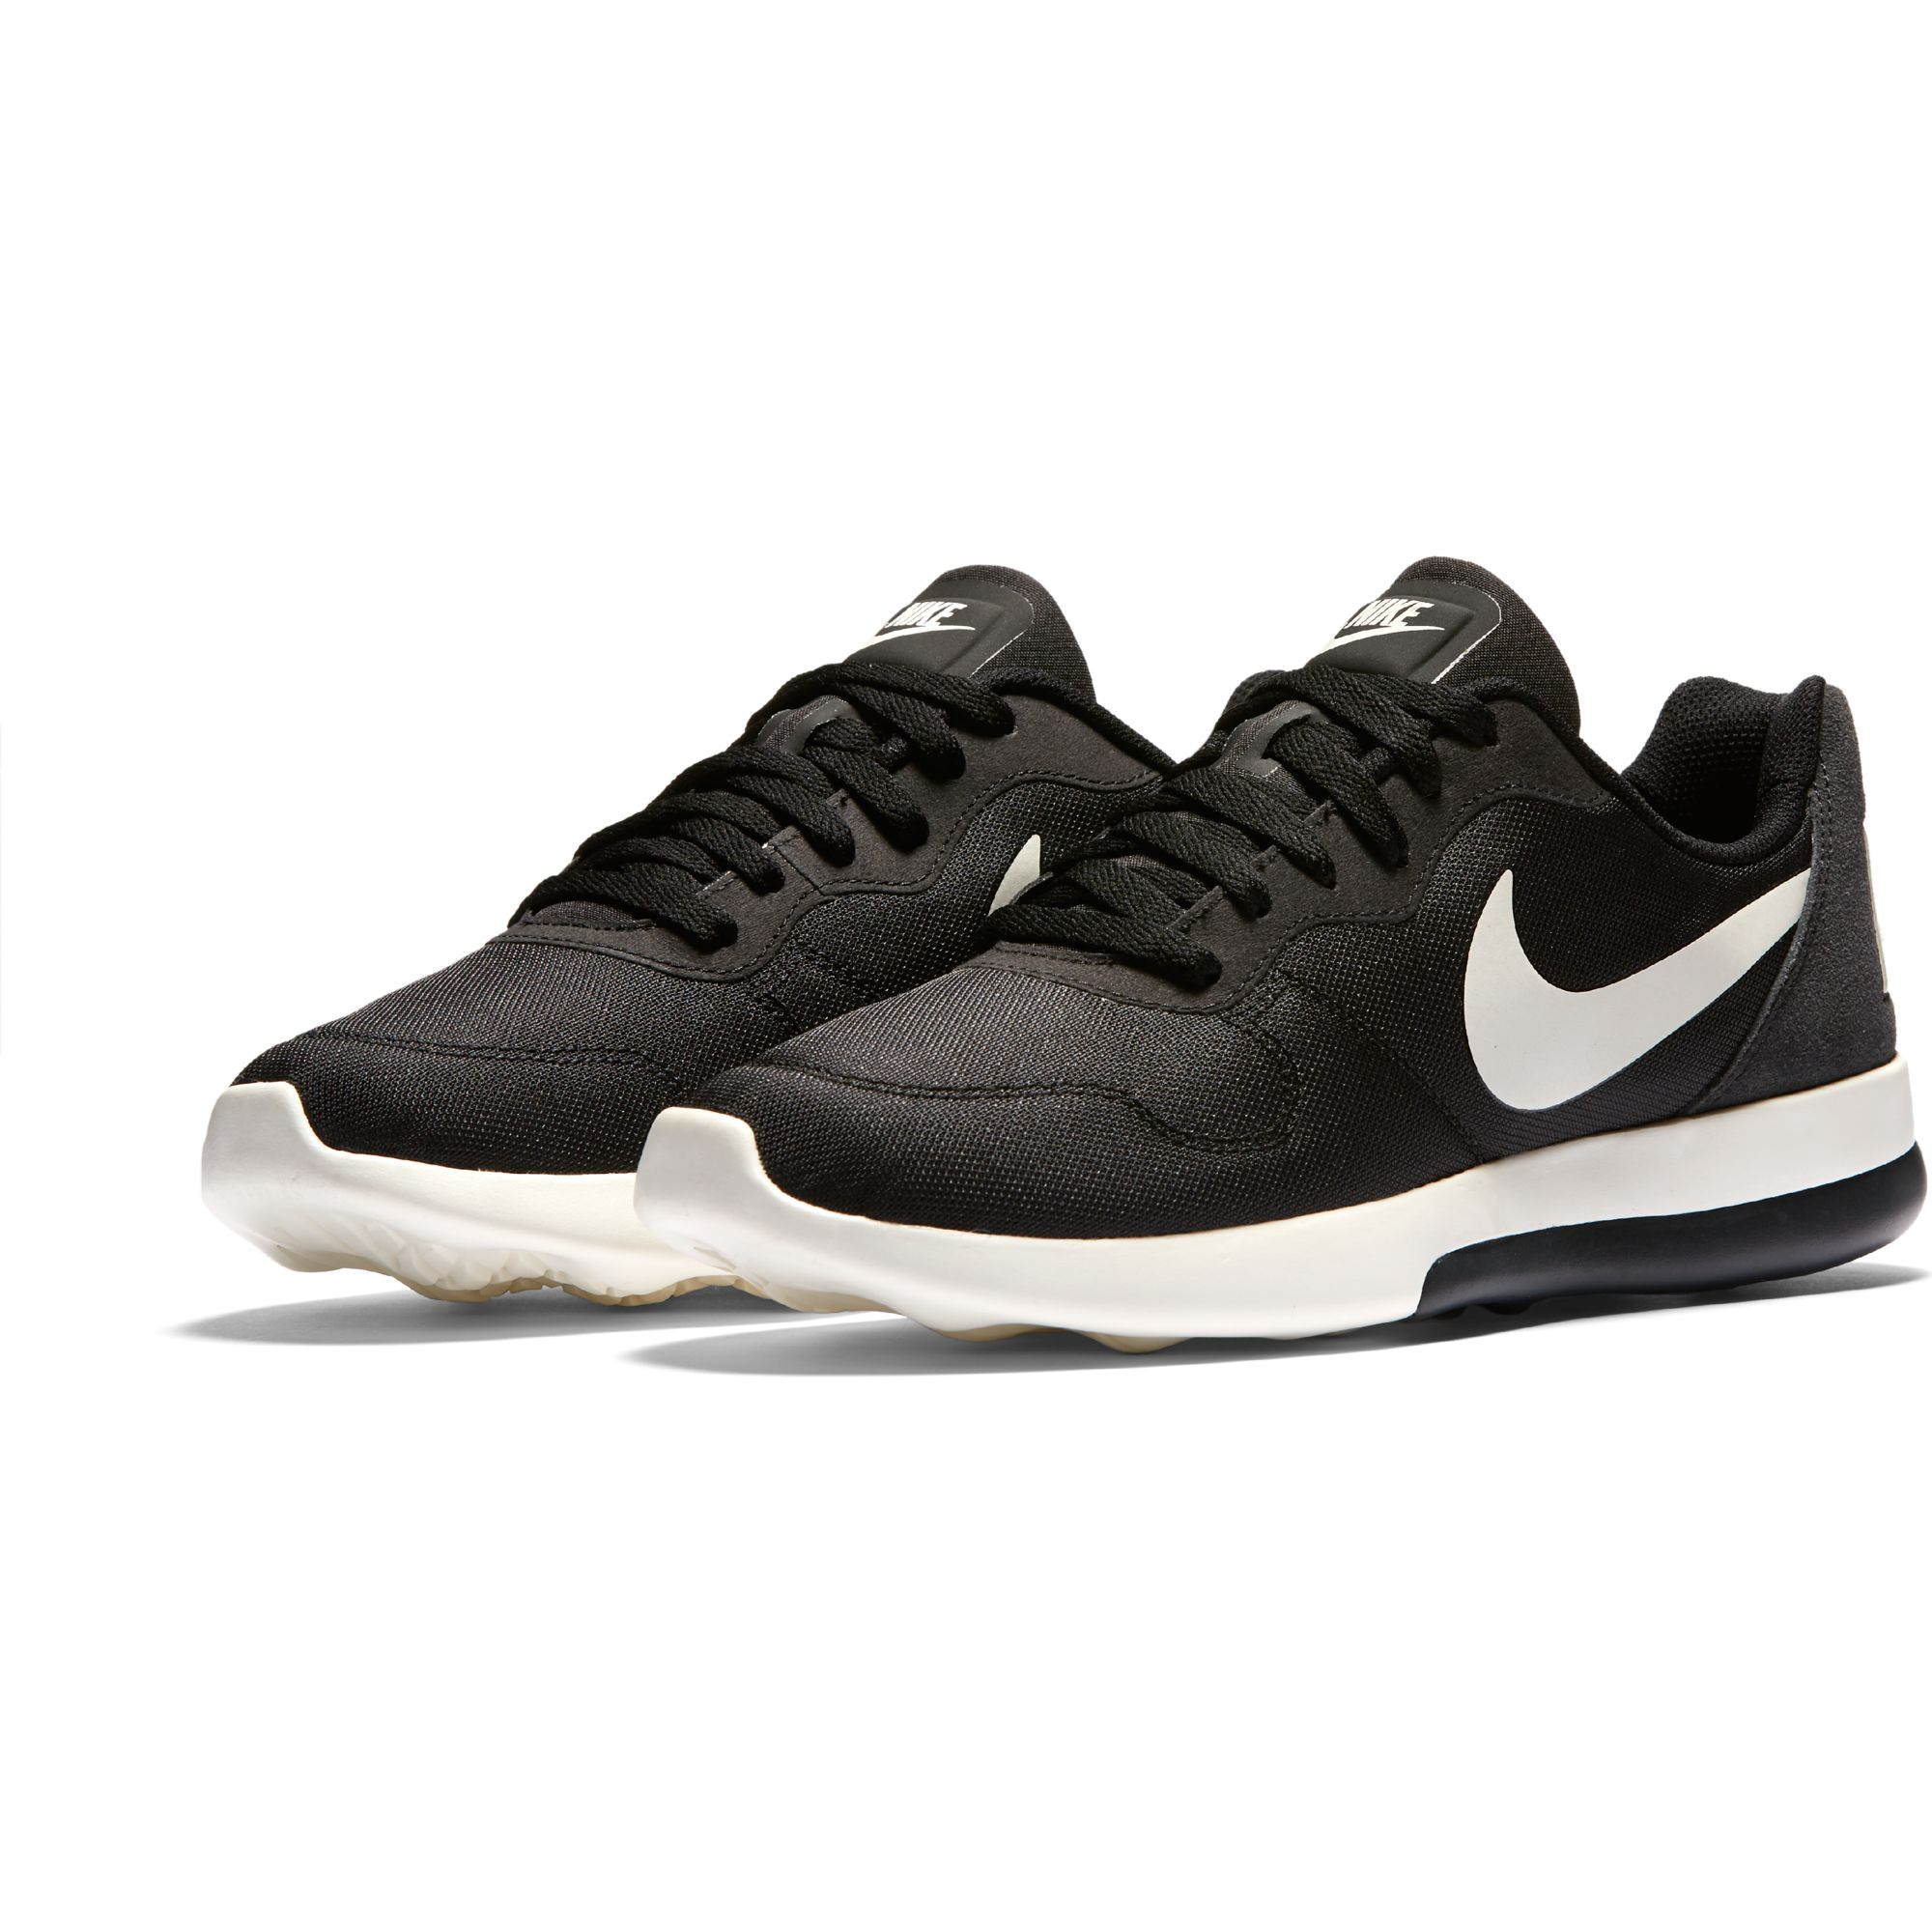 the latest 8ad95 ac7e7 Chaussure Nike MD Runner 2 LW Pour Homme   EKINSPORT